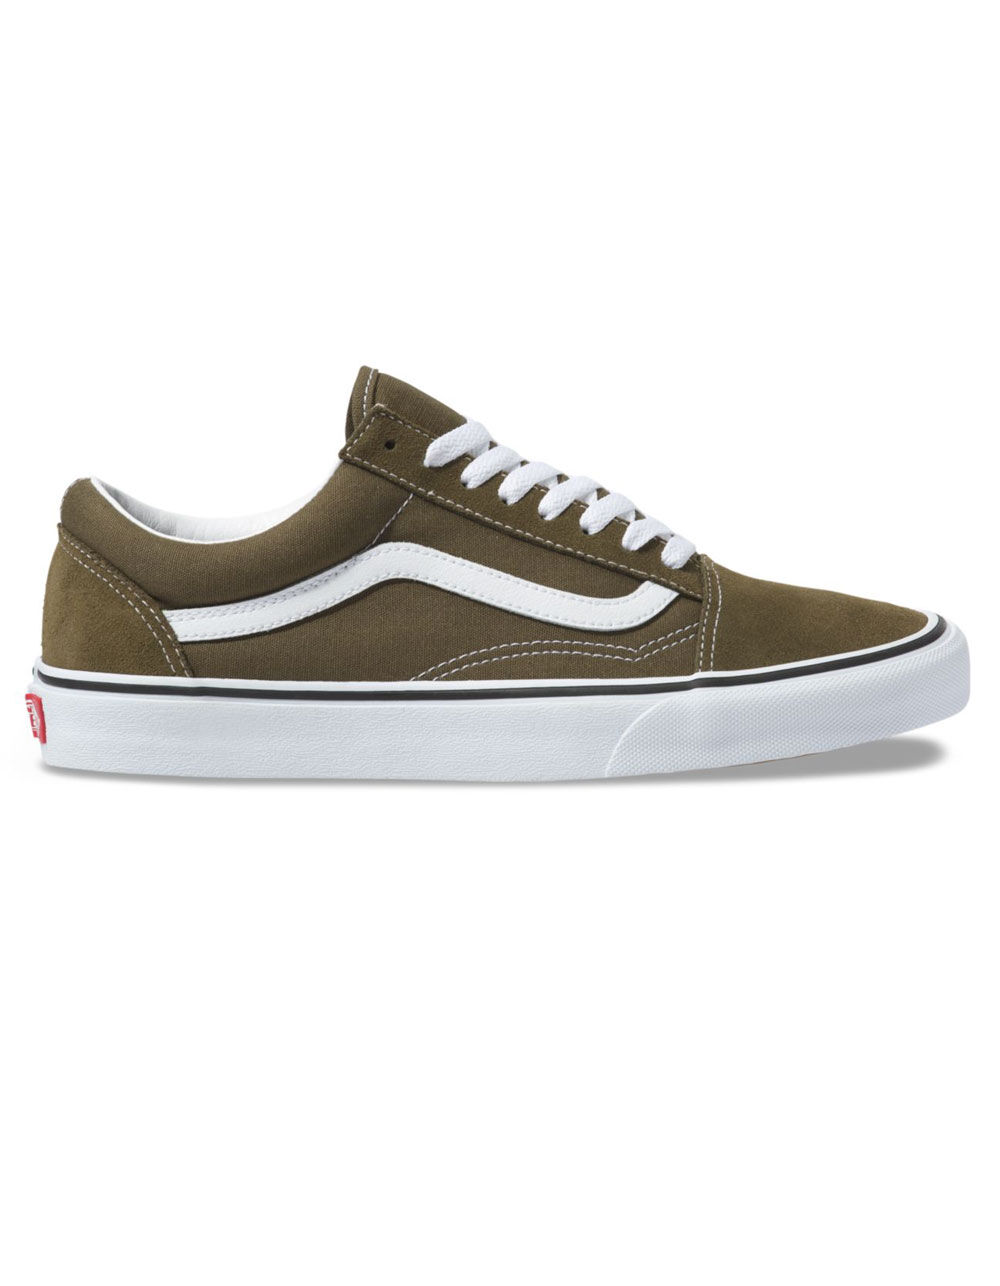 VANS Old Skool Beech & True White Shoes